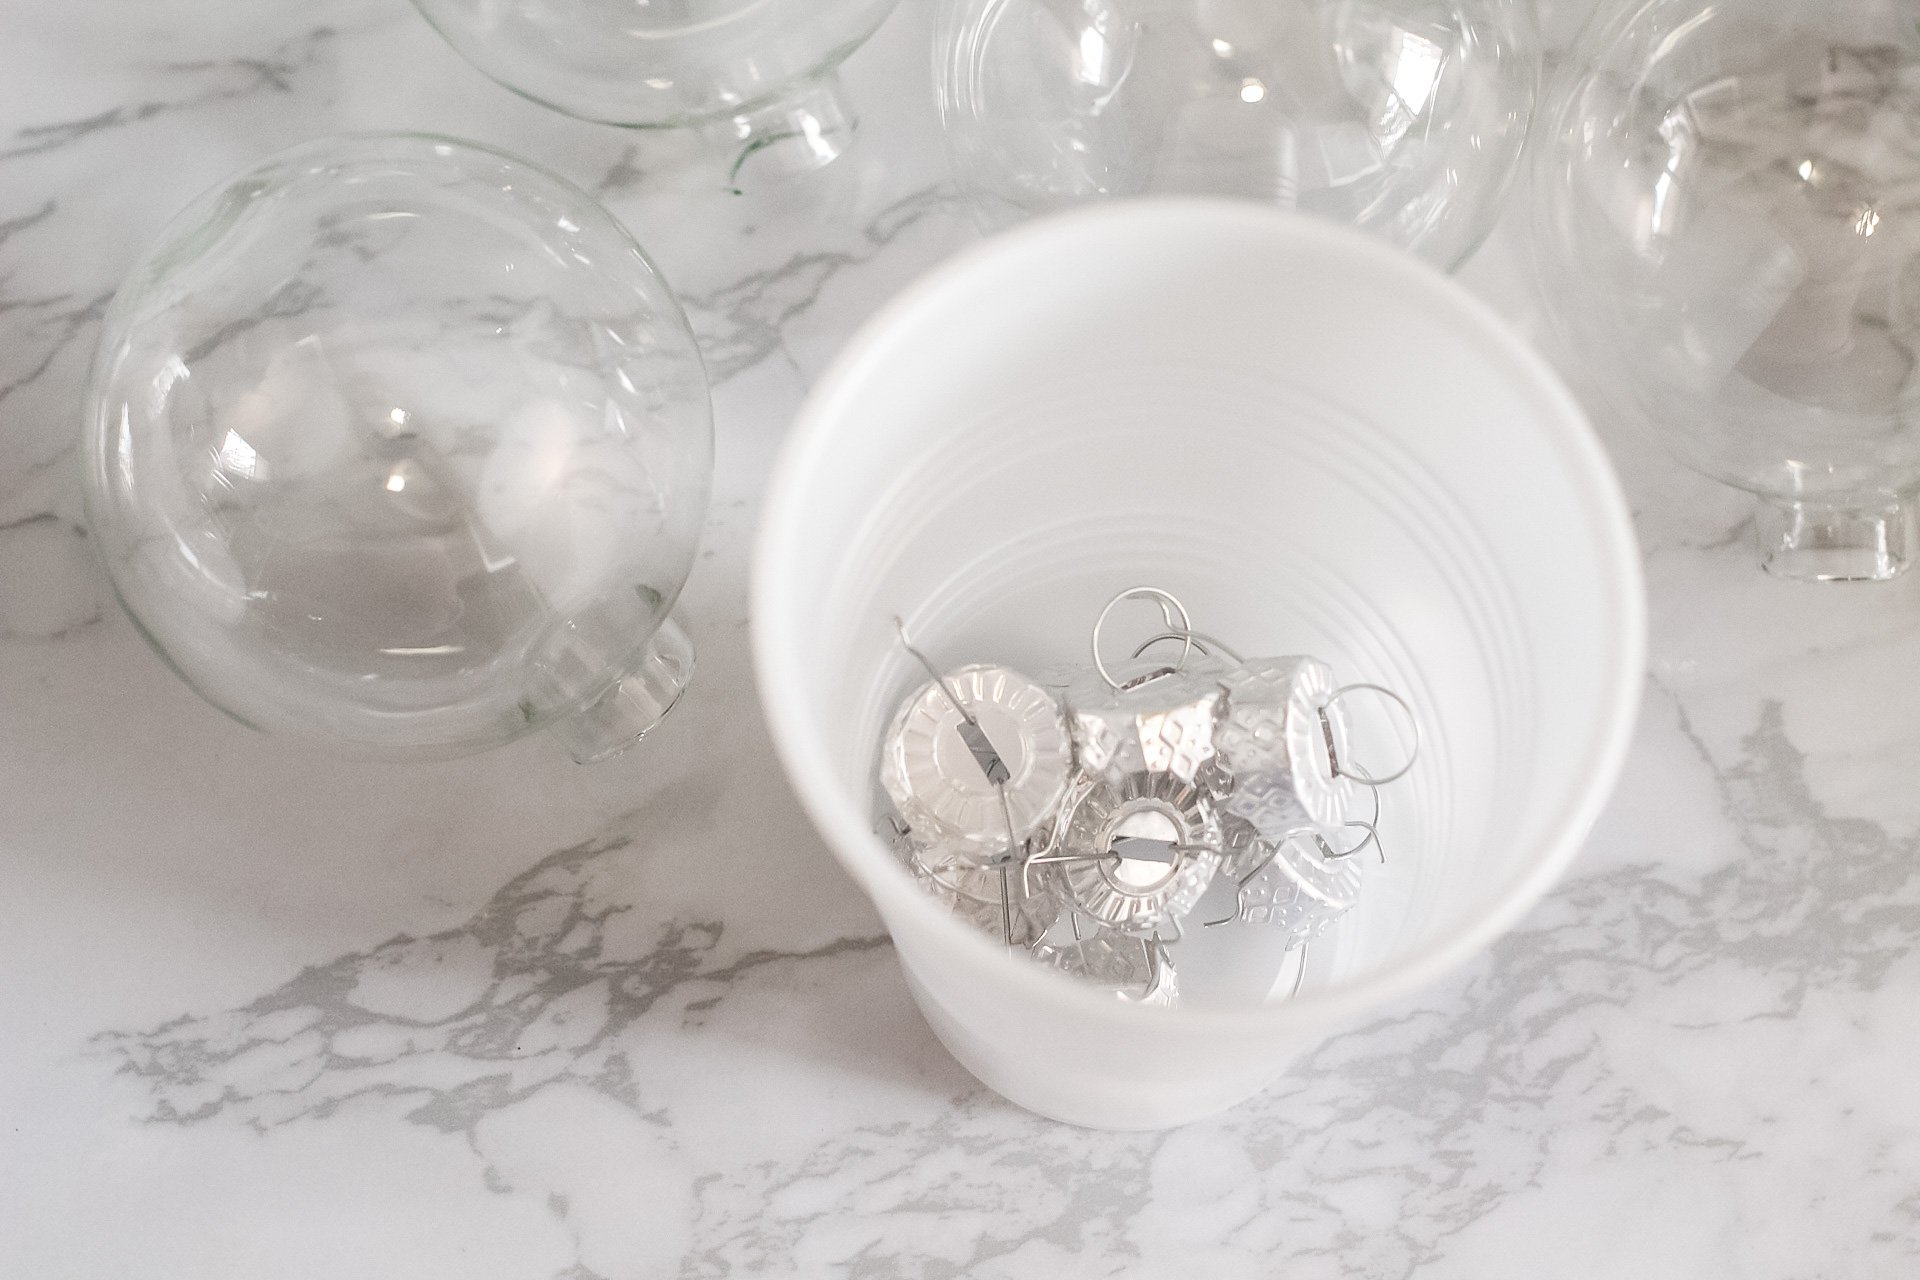 glass ornament tops removed and placed in a cup